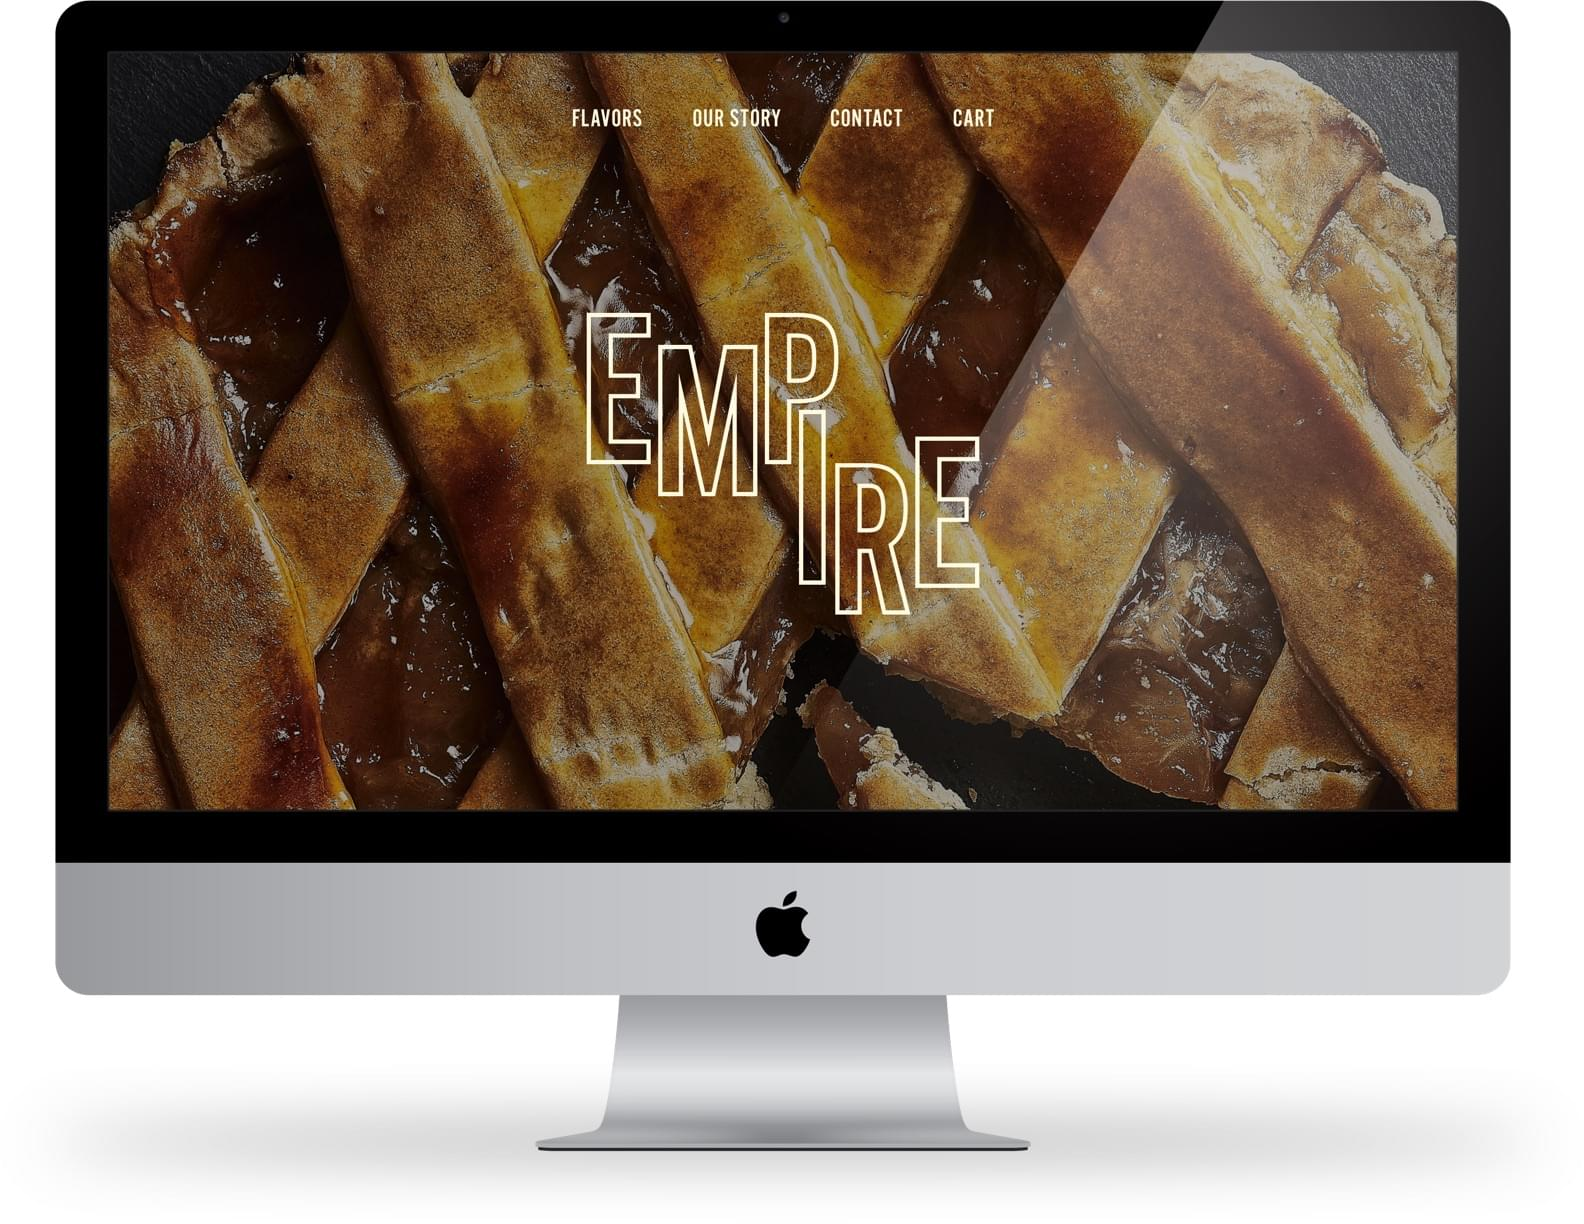 A large image of the homepage for Empire Pies. The website shows a large pie in the background with the Empire logo on top.